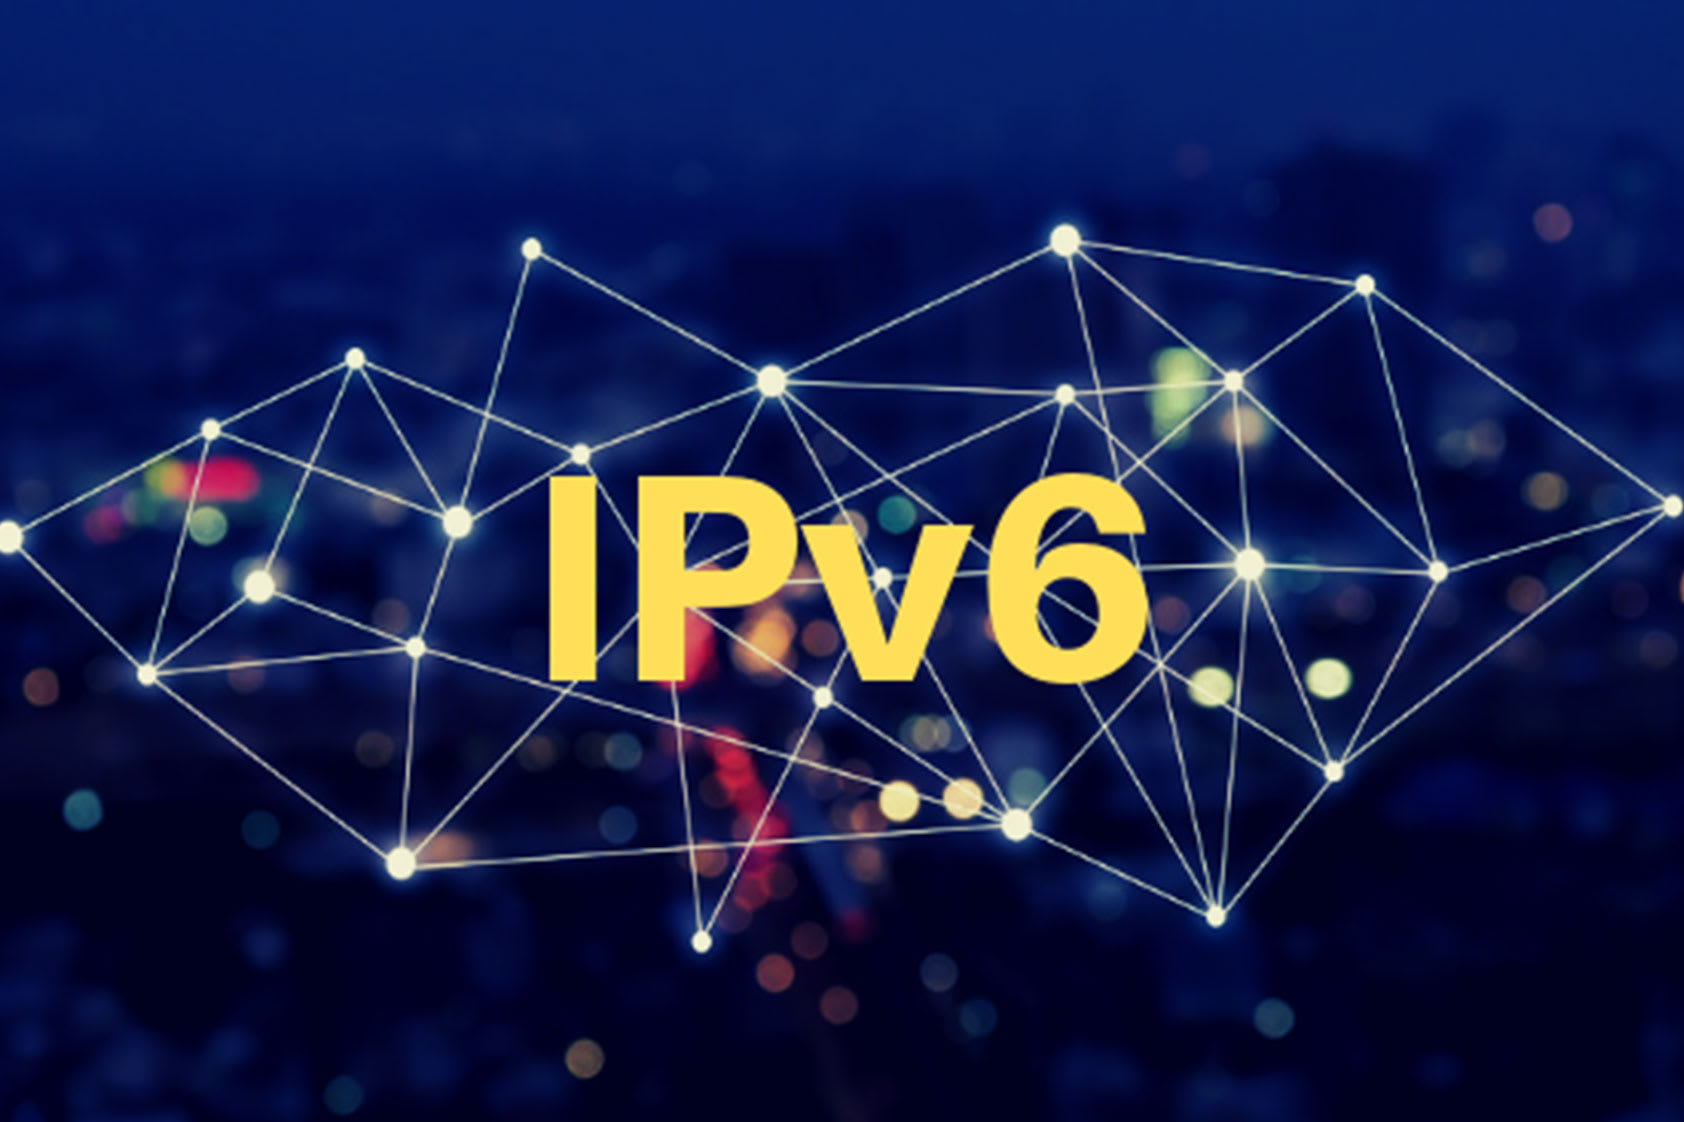 IPv6 adoption in the world